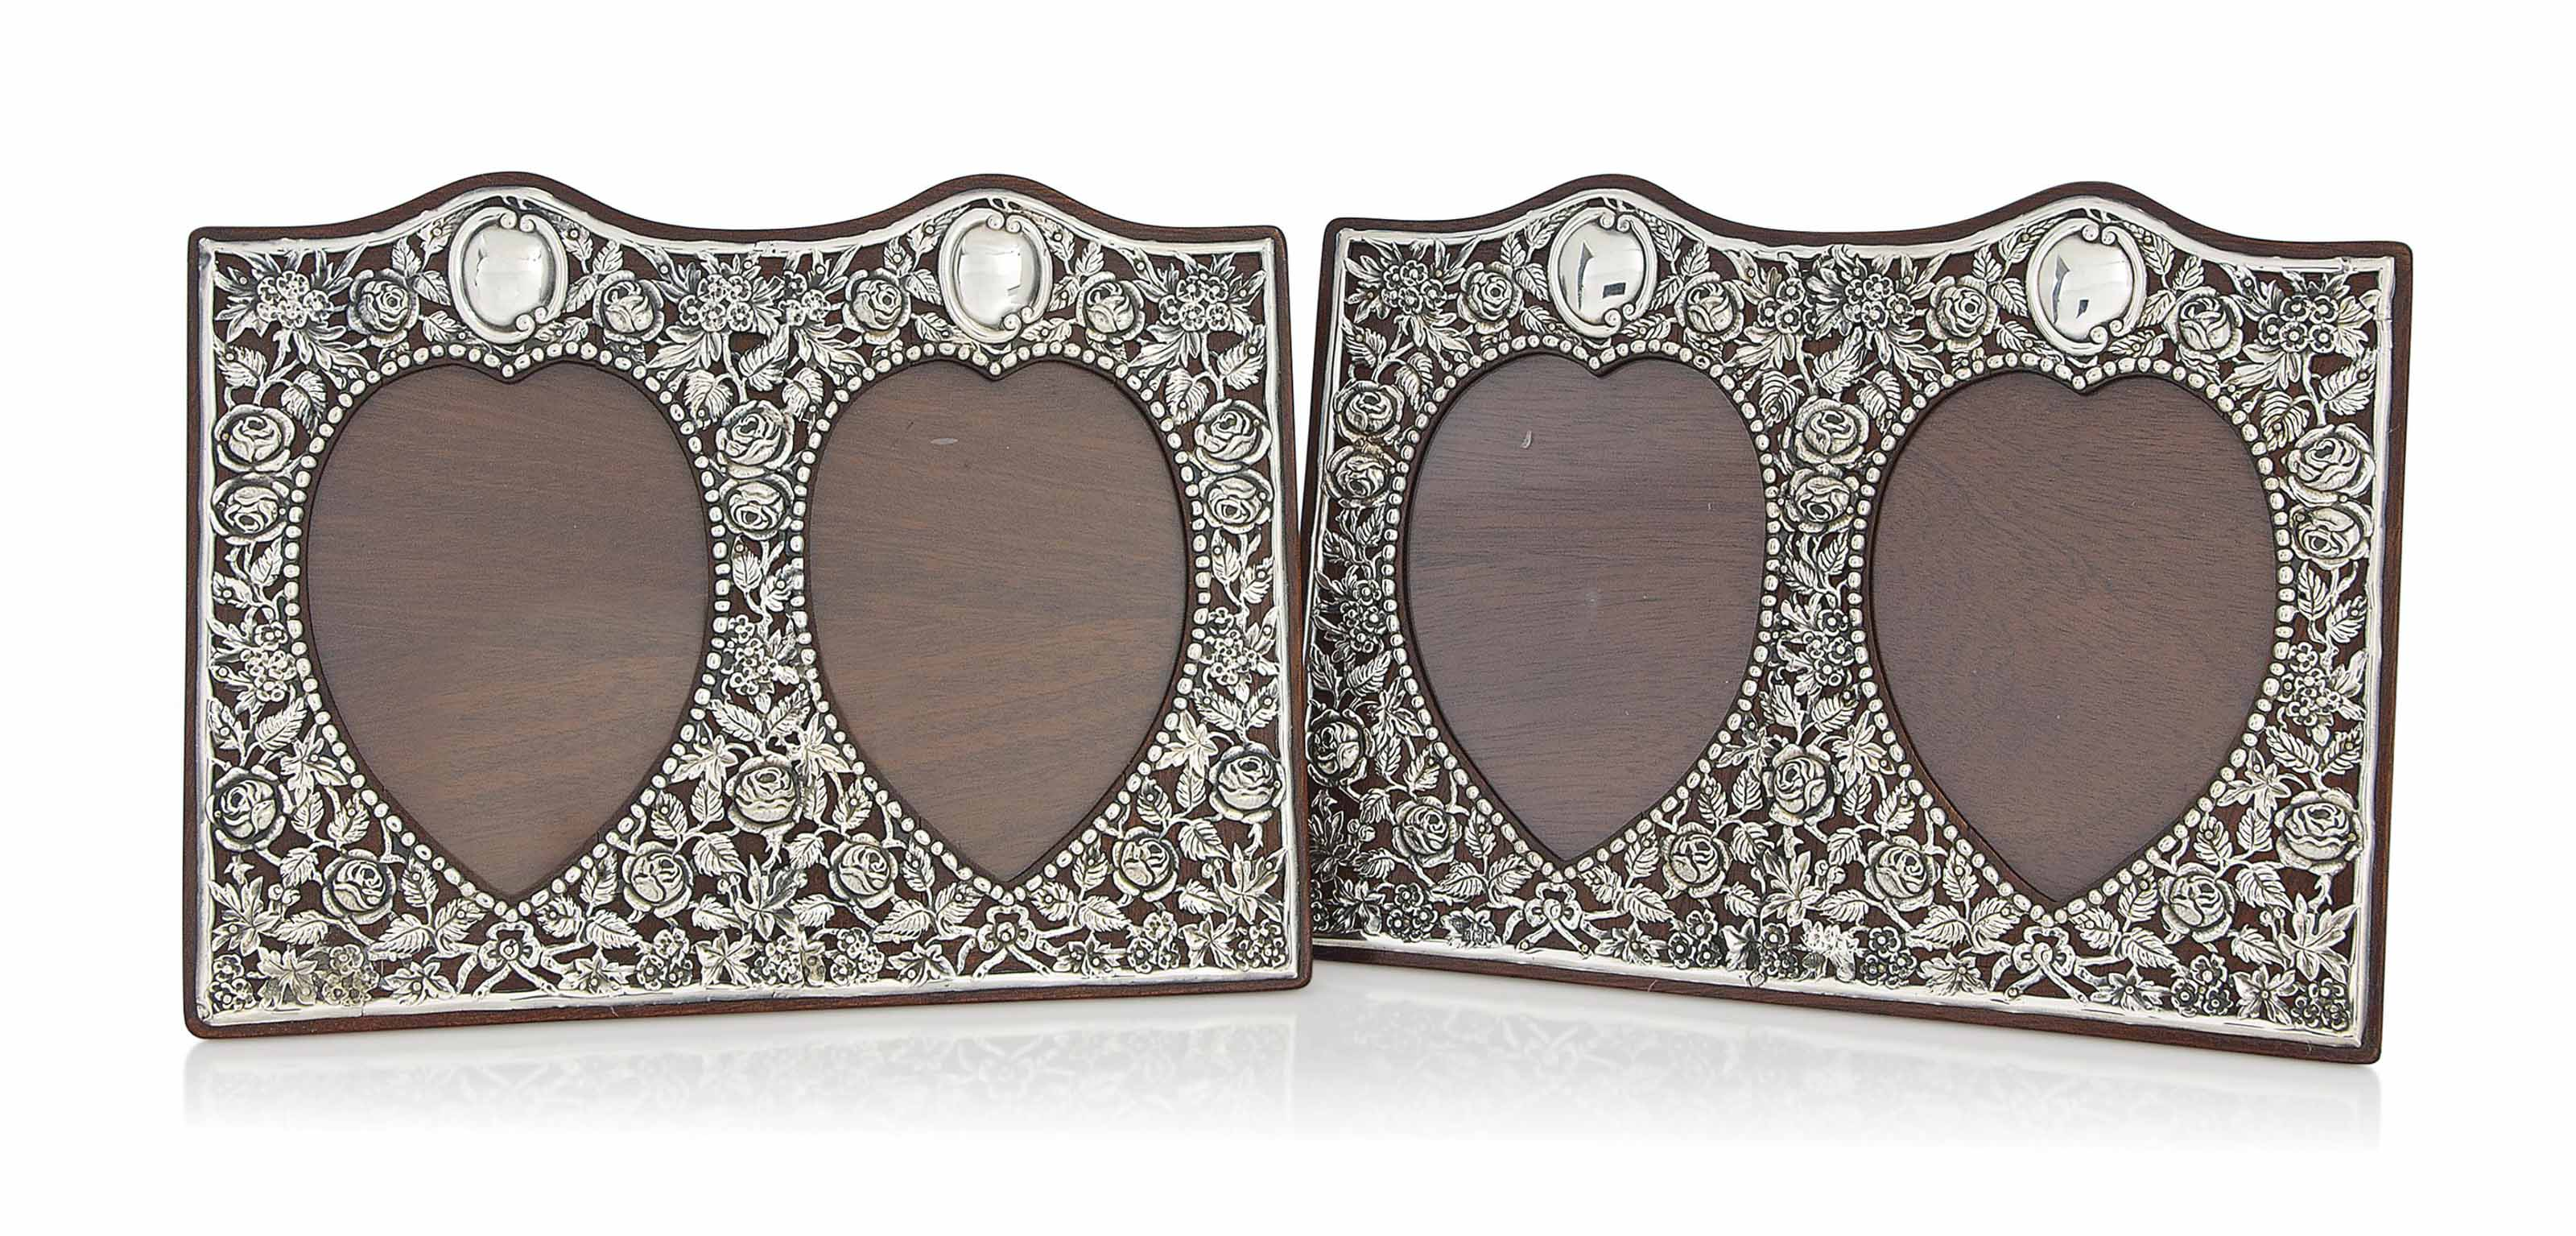 A MATCHED PAIR OF DOUBLE-HEART SILVER AMD MAHOGANY PHOTOGRAPH FRAMES